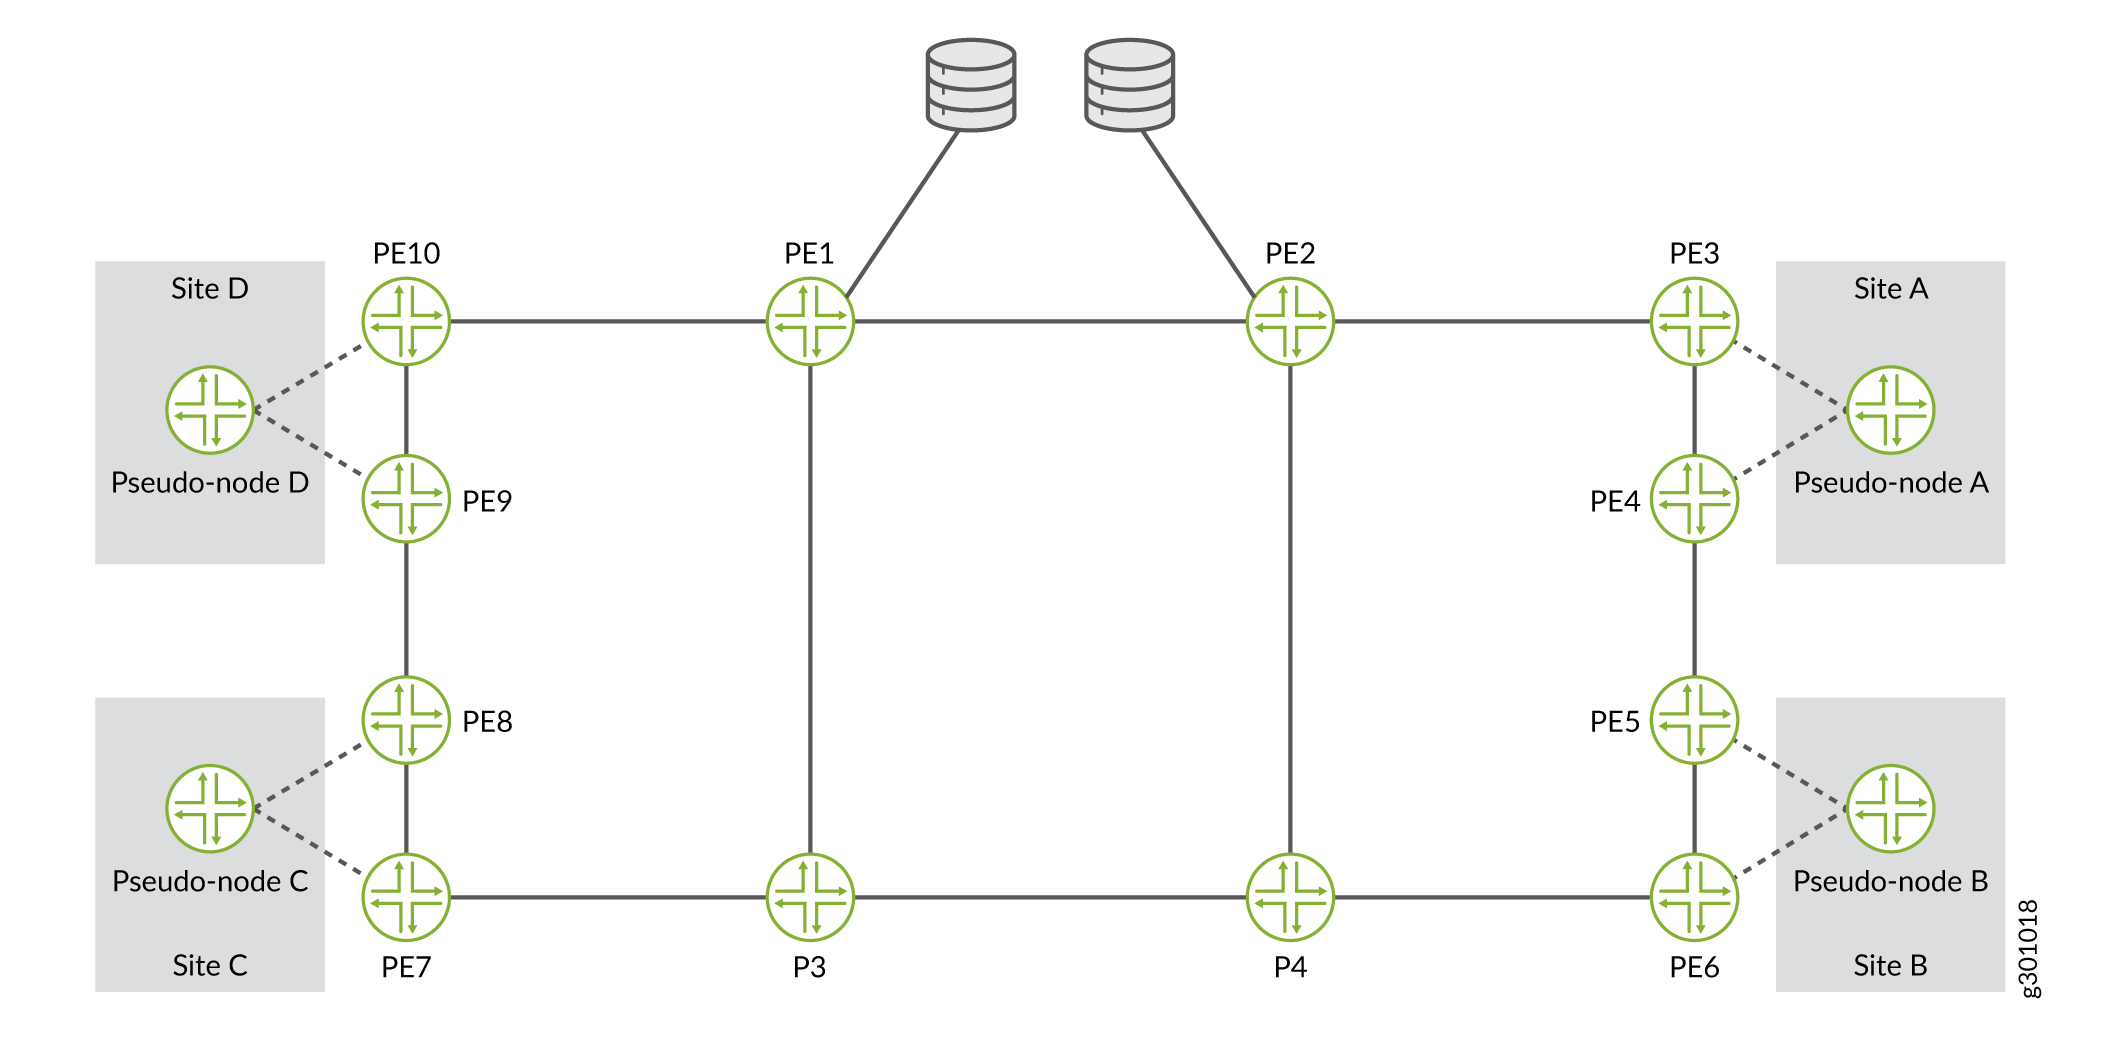 Diverse PE to CE Links Topology with Pseudo-Nodes